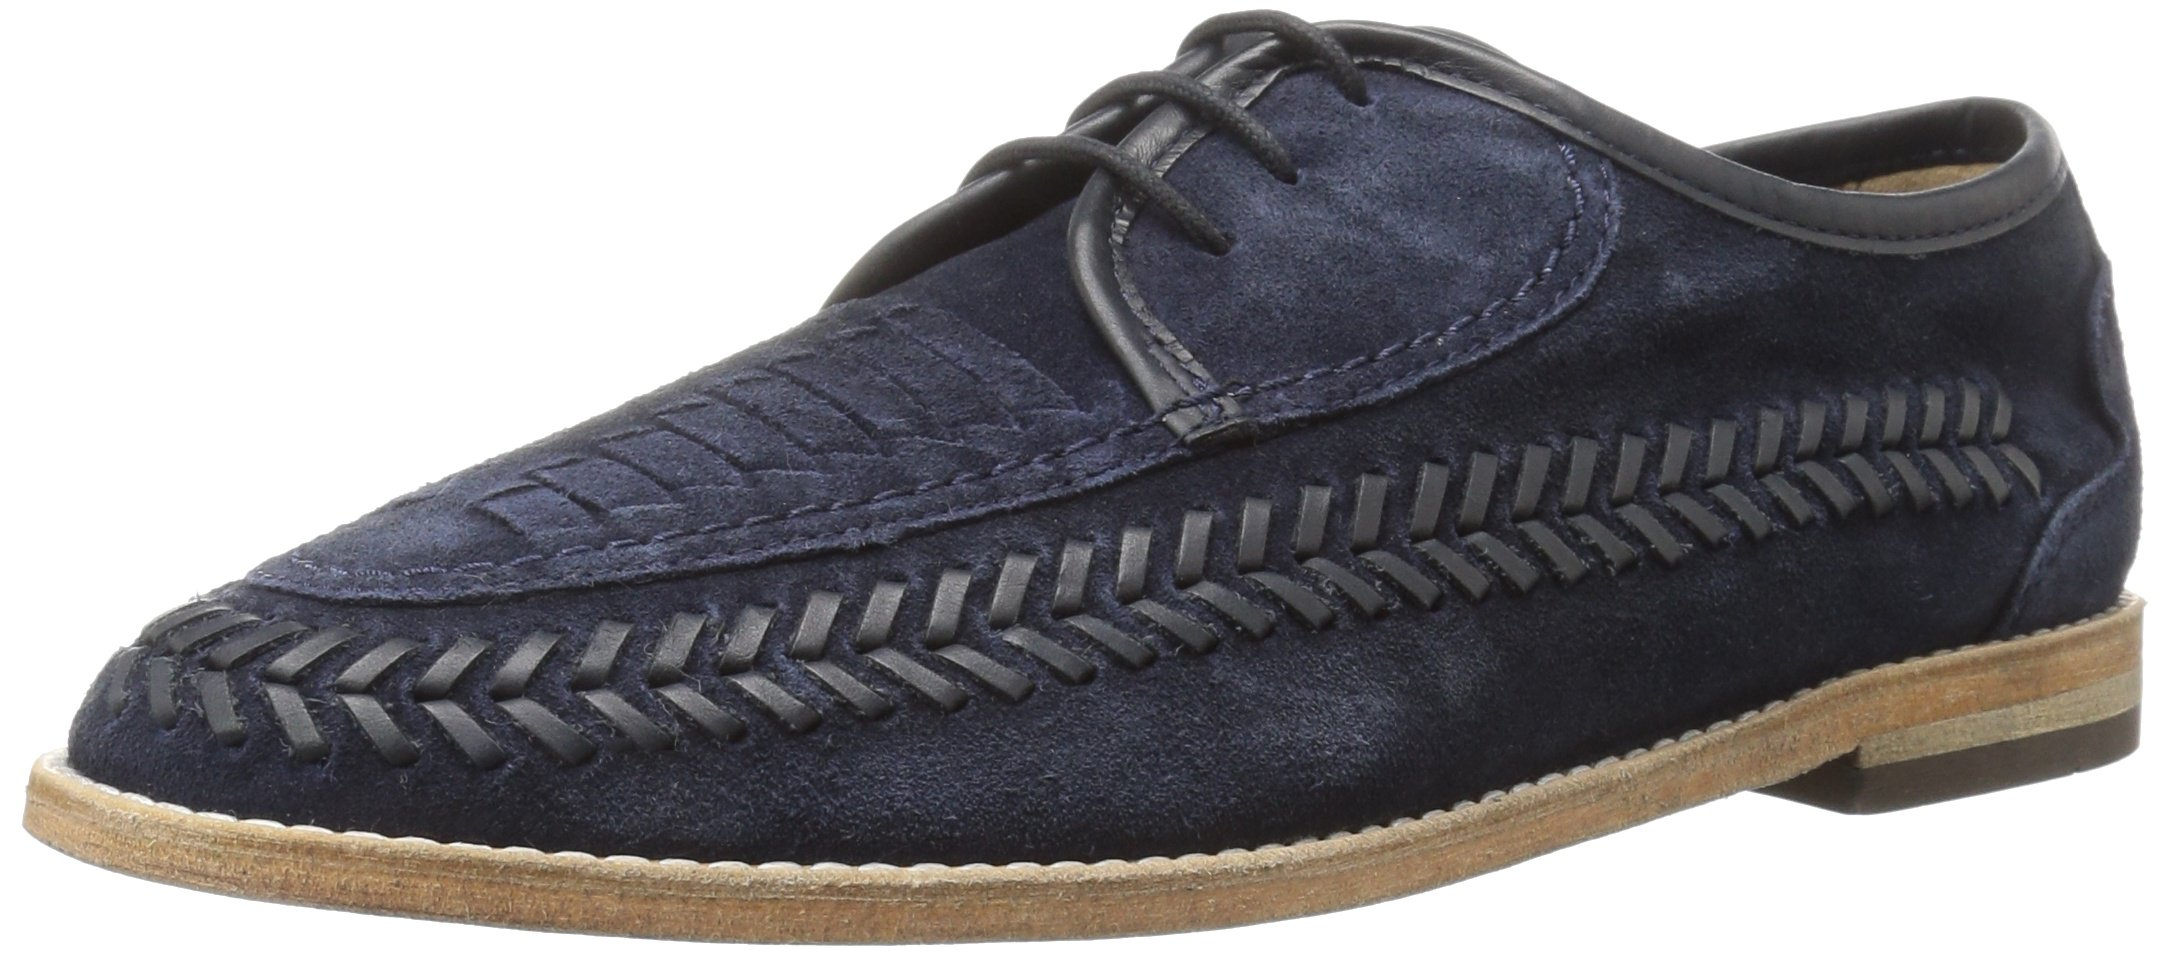 H by Hudson Men's Anfa Suede Oxford, Navy, 8 M US